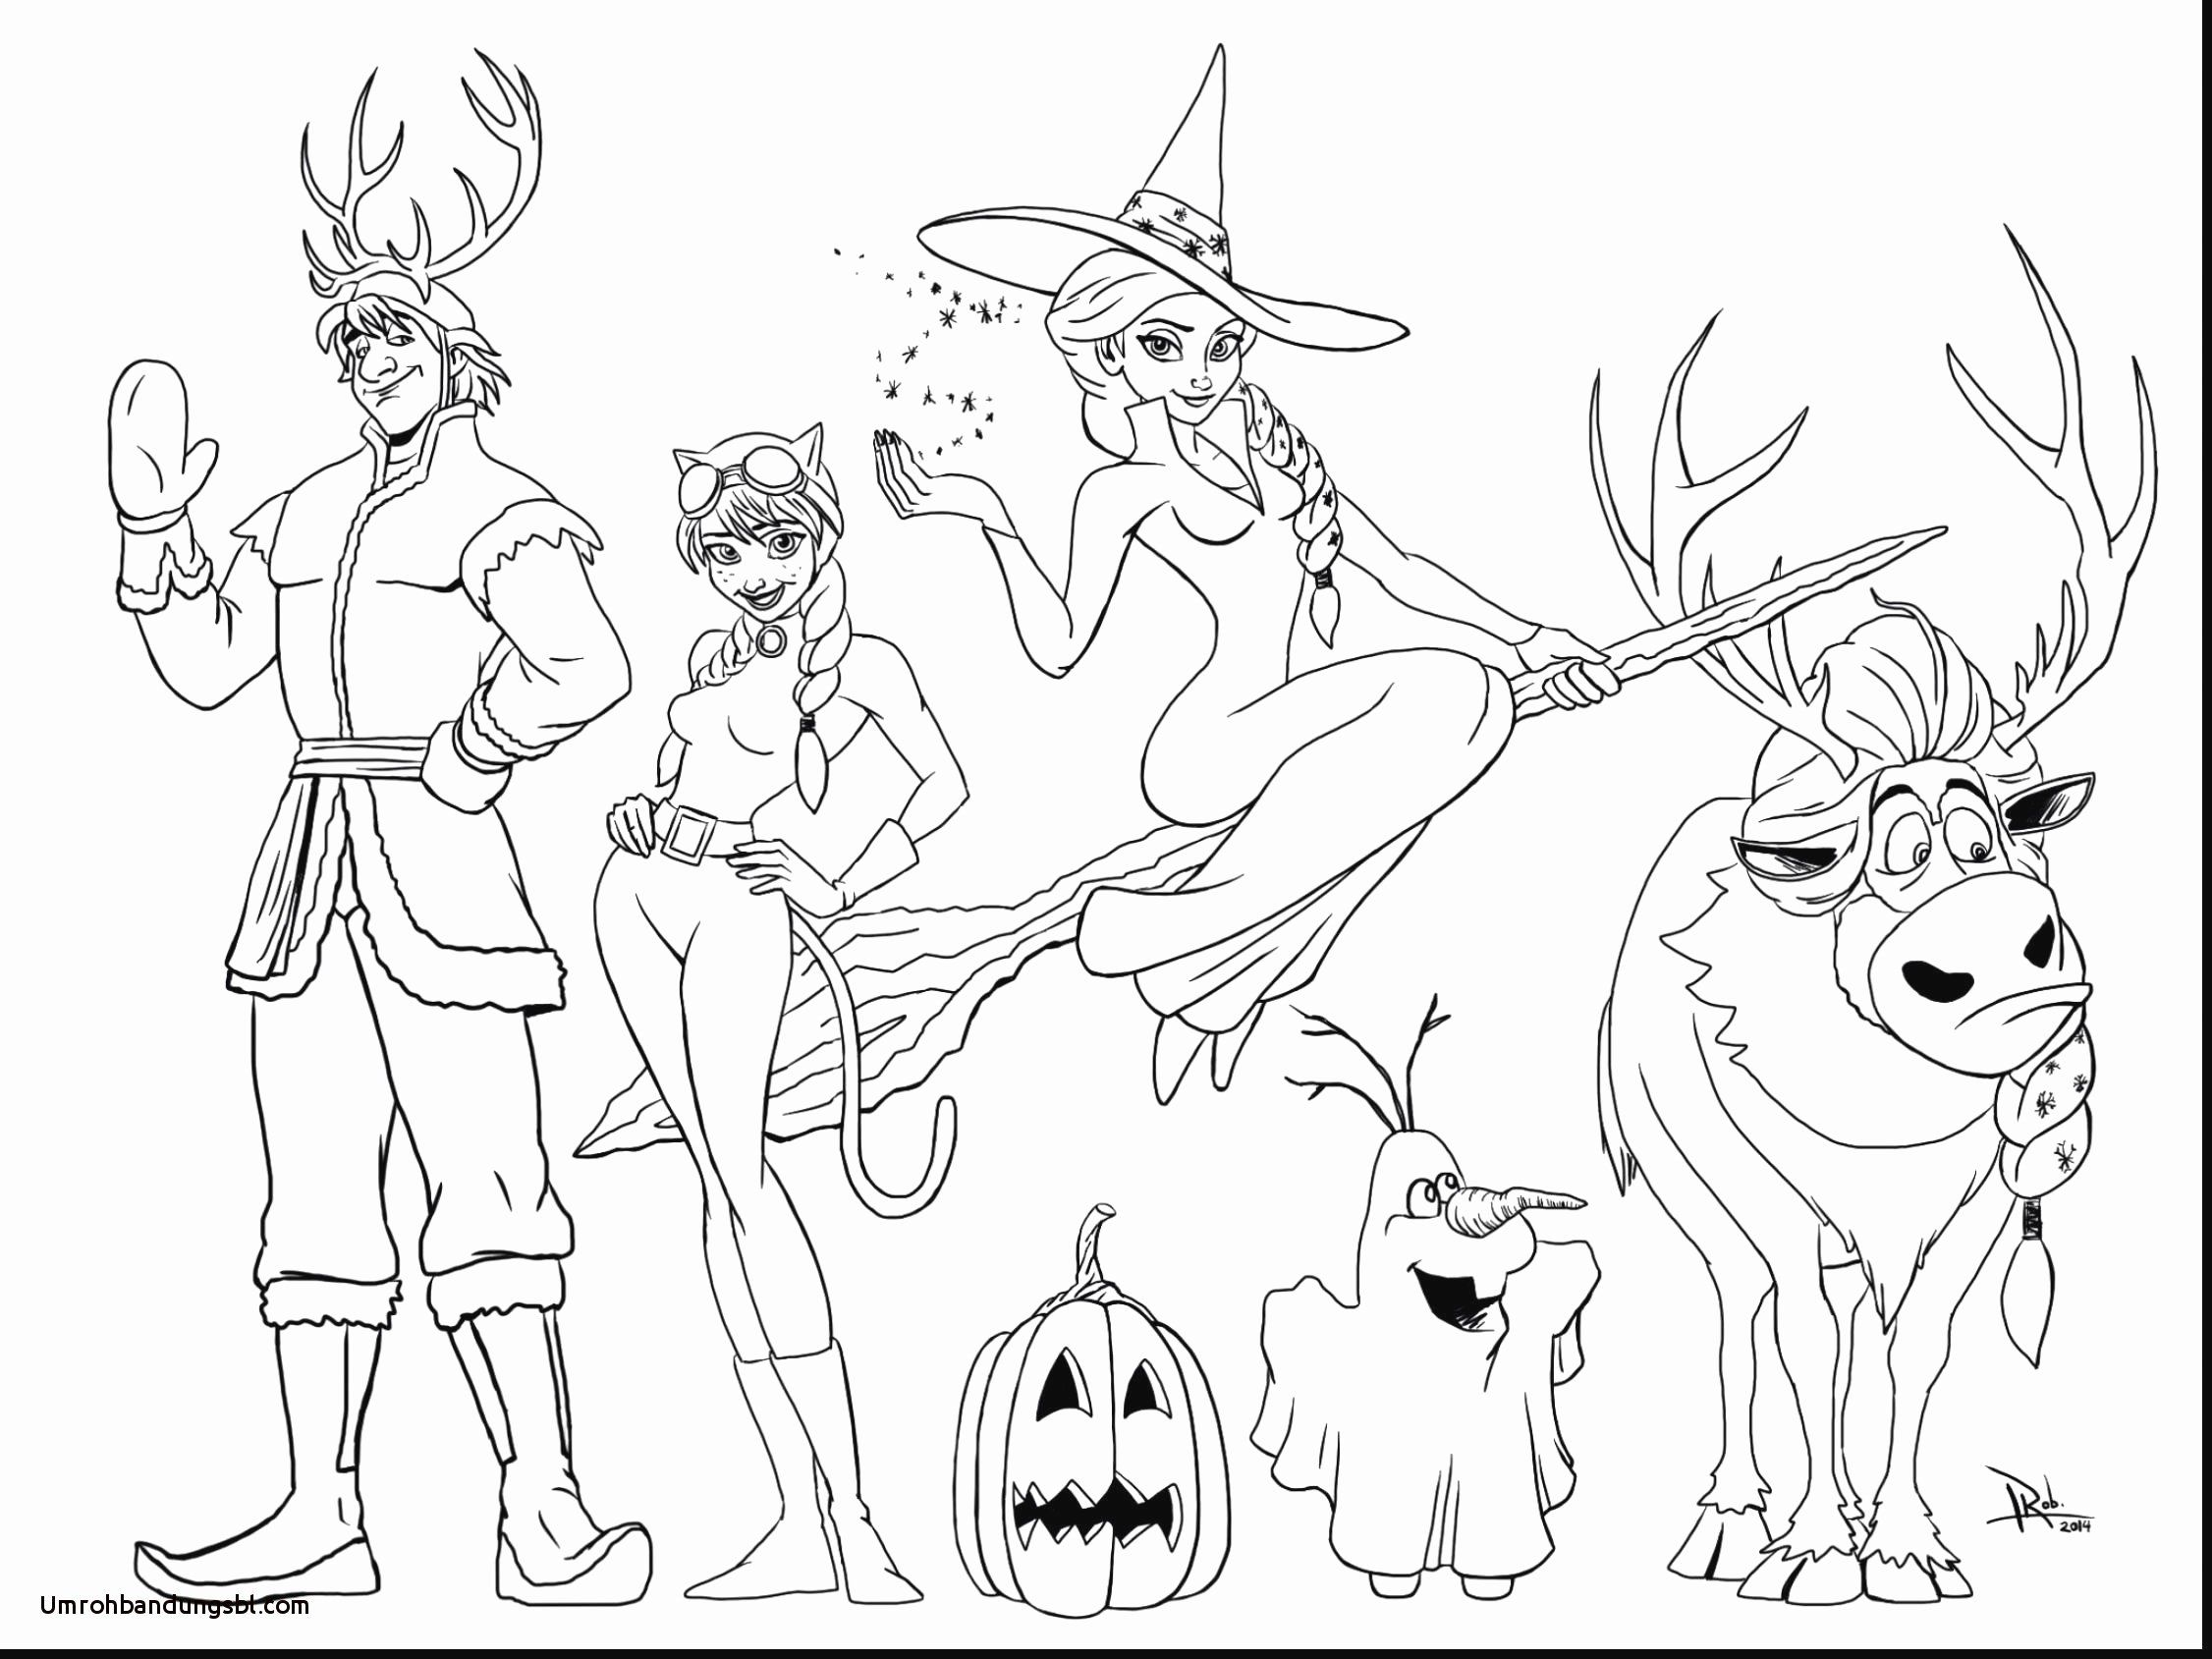 Free Frozen Coloring Sheets Inspirational Coloring Pages Elsa Uncategorized Halloween Coloring Pages Disney Halloween Coloring Pages Halloween Coloring Sheets